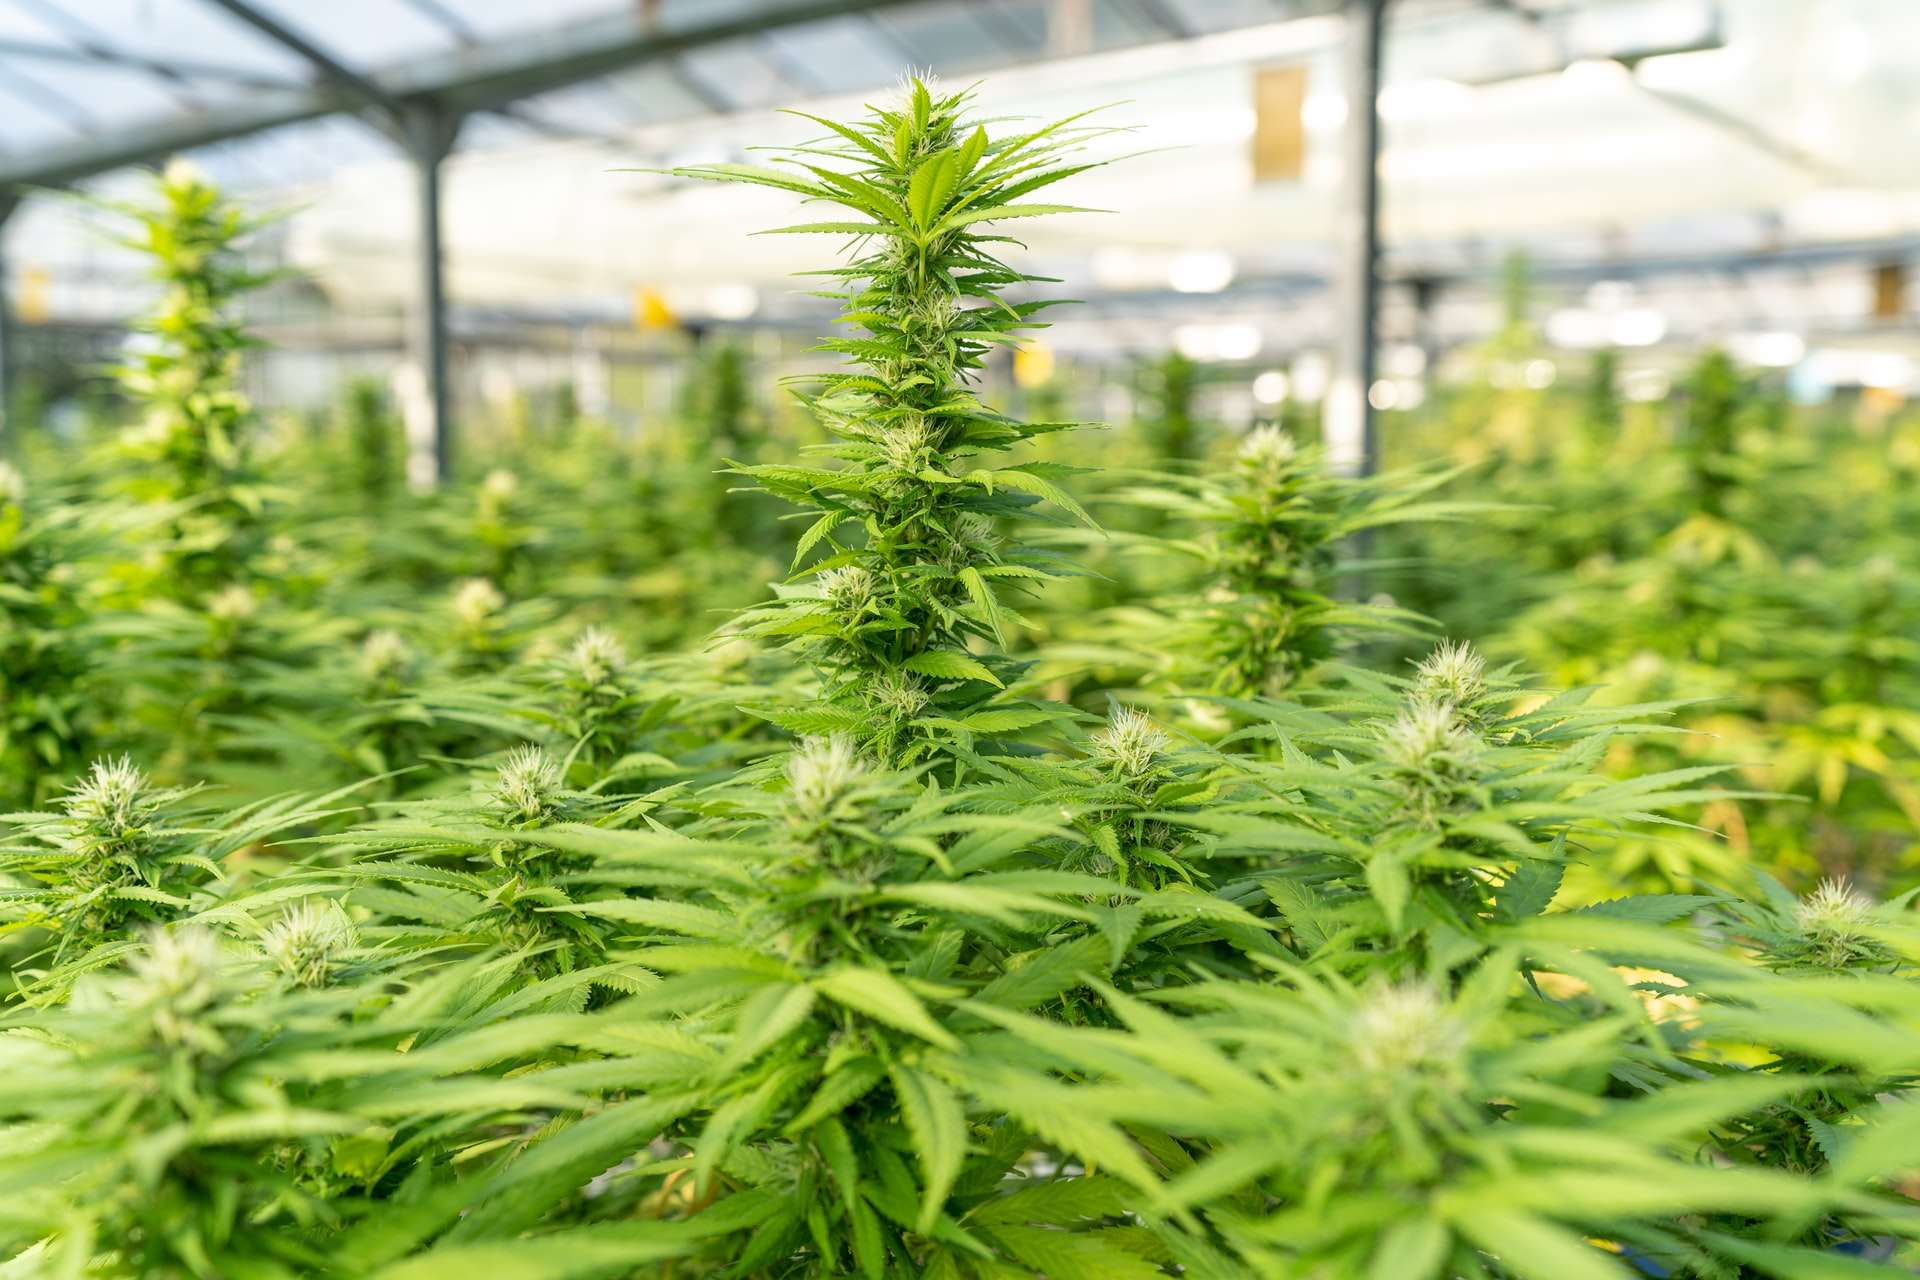 large amount of cannabis in greenhouse